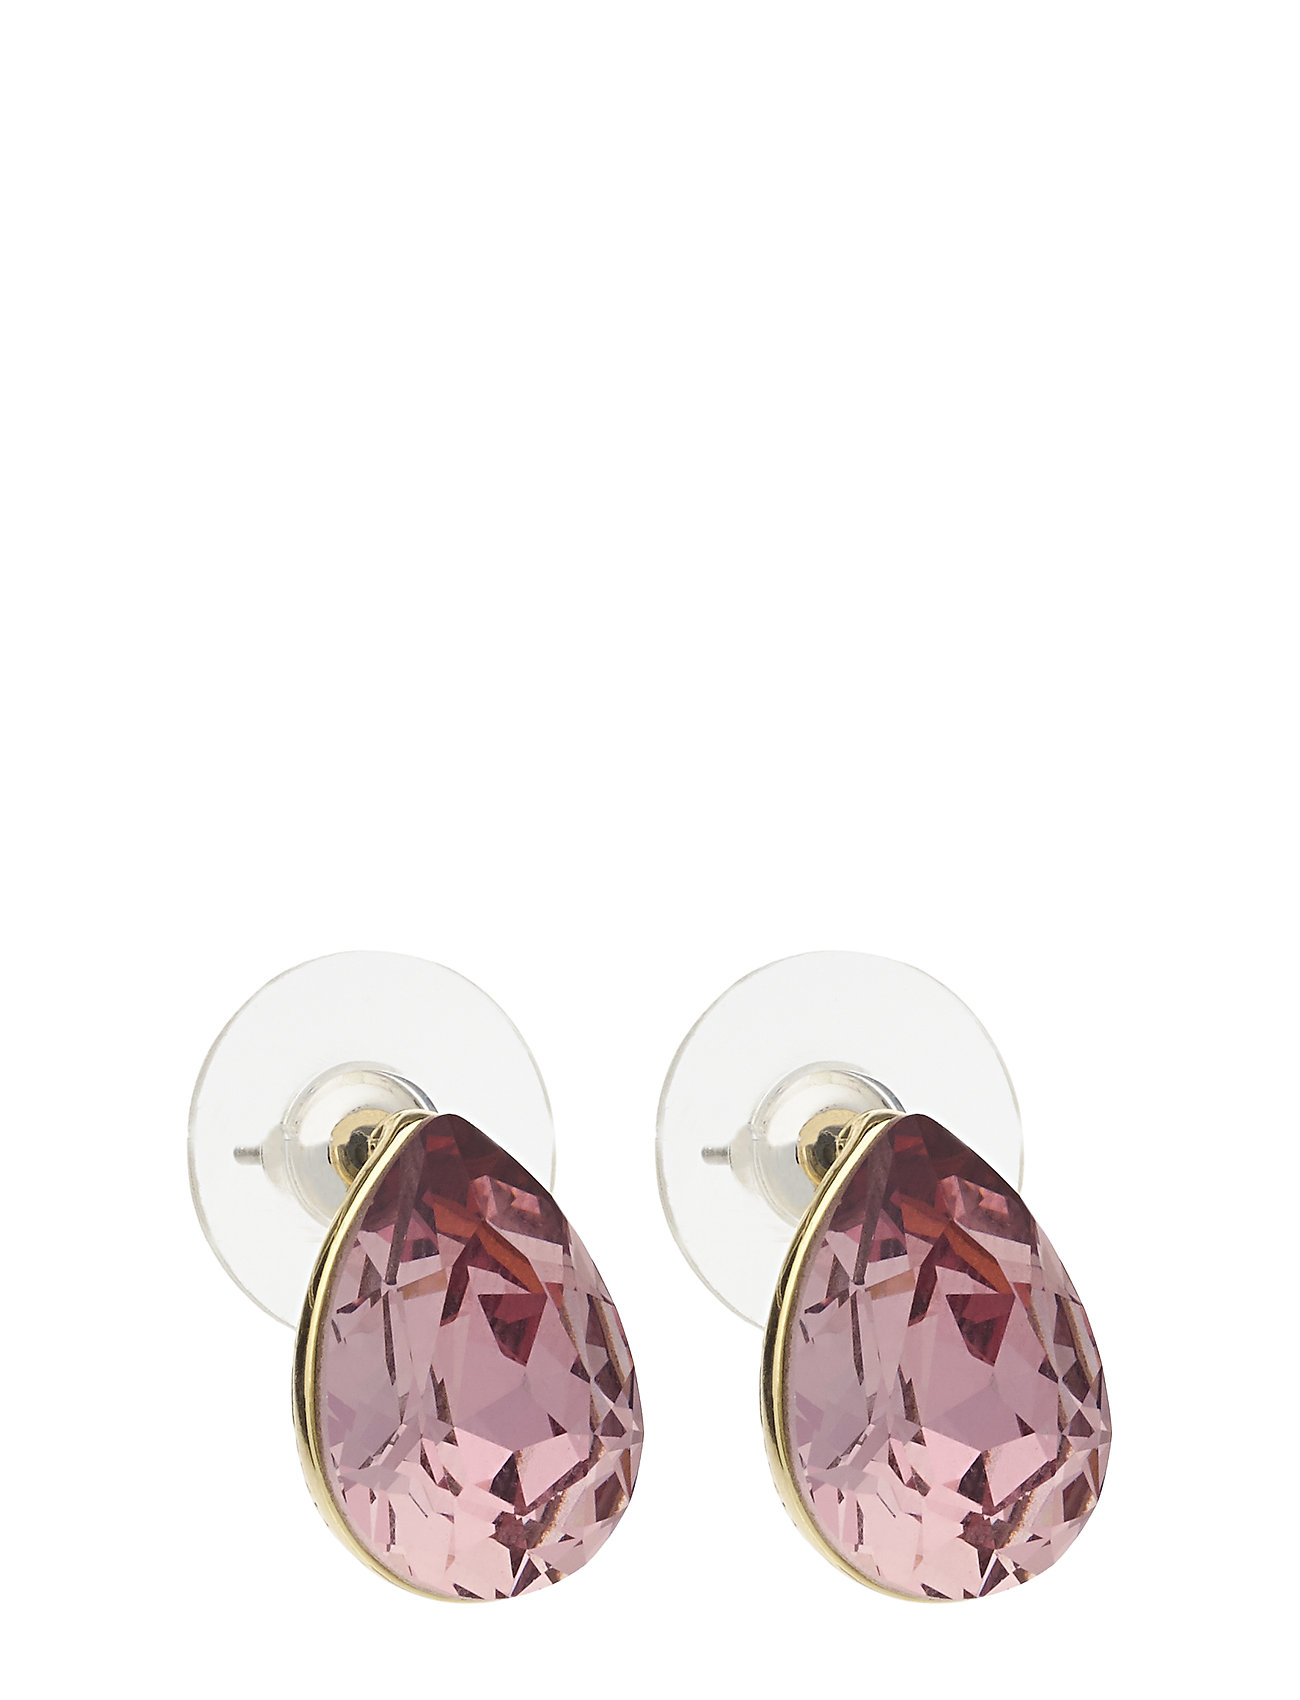 Image of West Broadway Ear Accessories Jewellery Earrings Studs Sølv SNÖ Of Sweden (3270672877)